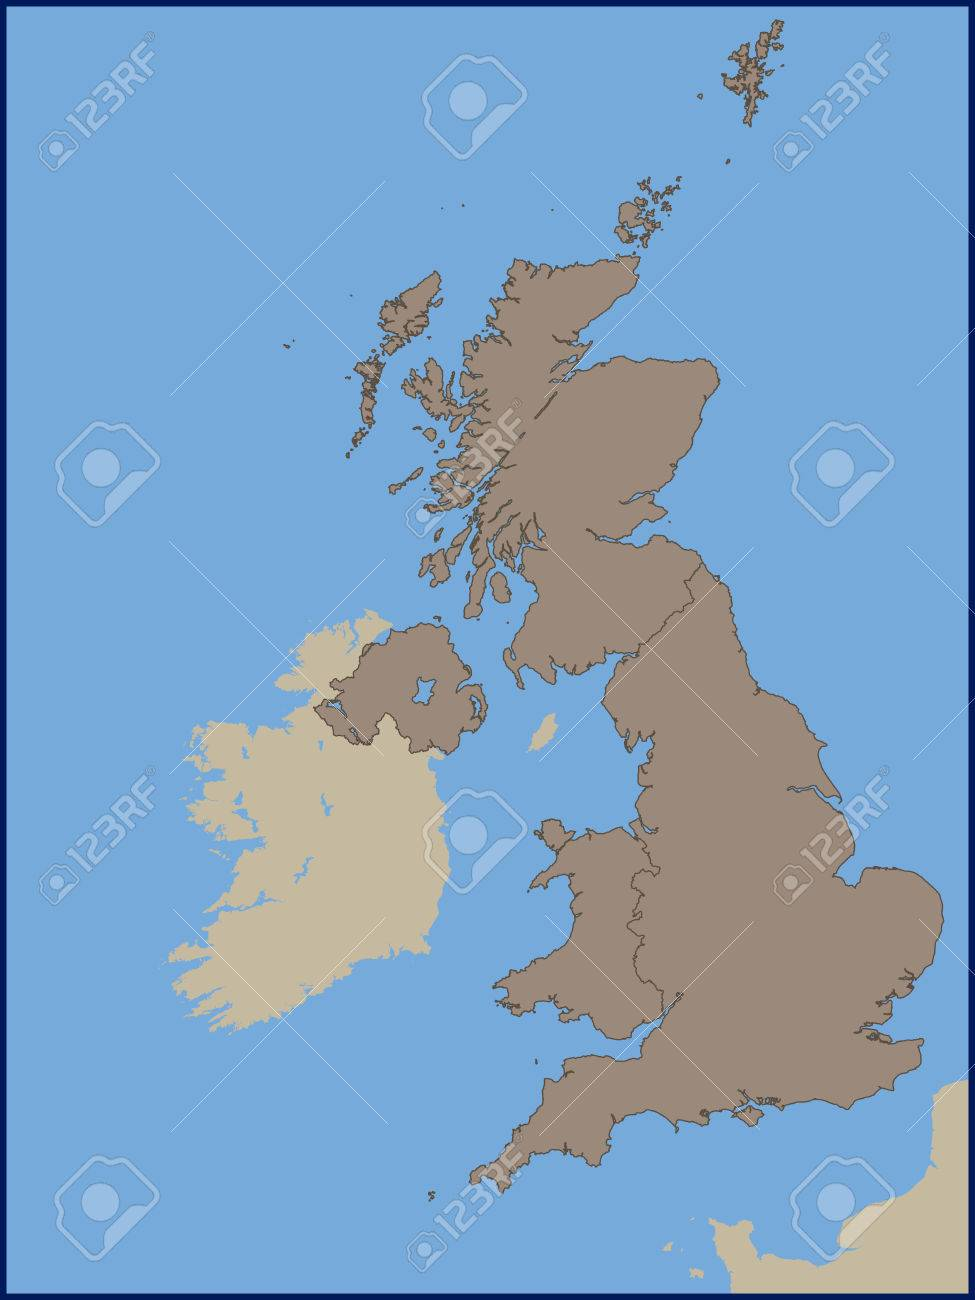 Political Map Of Uk.Empty Political Map Of Uk Royalty Free Cliparts Vectors And Stock